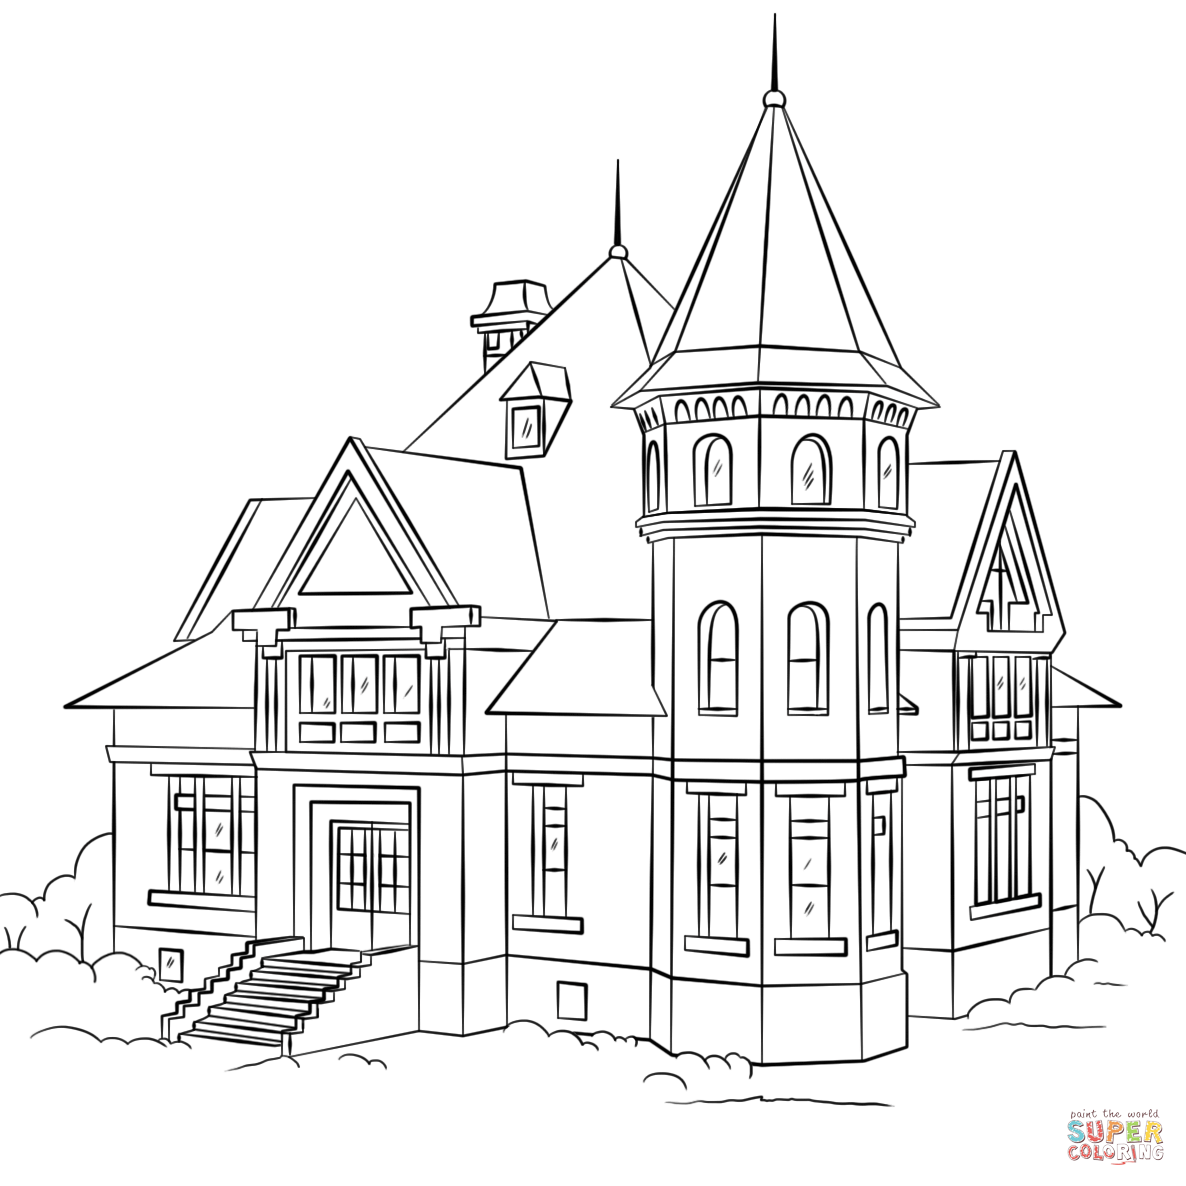 household coloring pages - photo#1